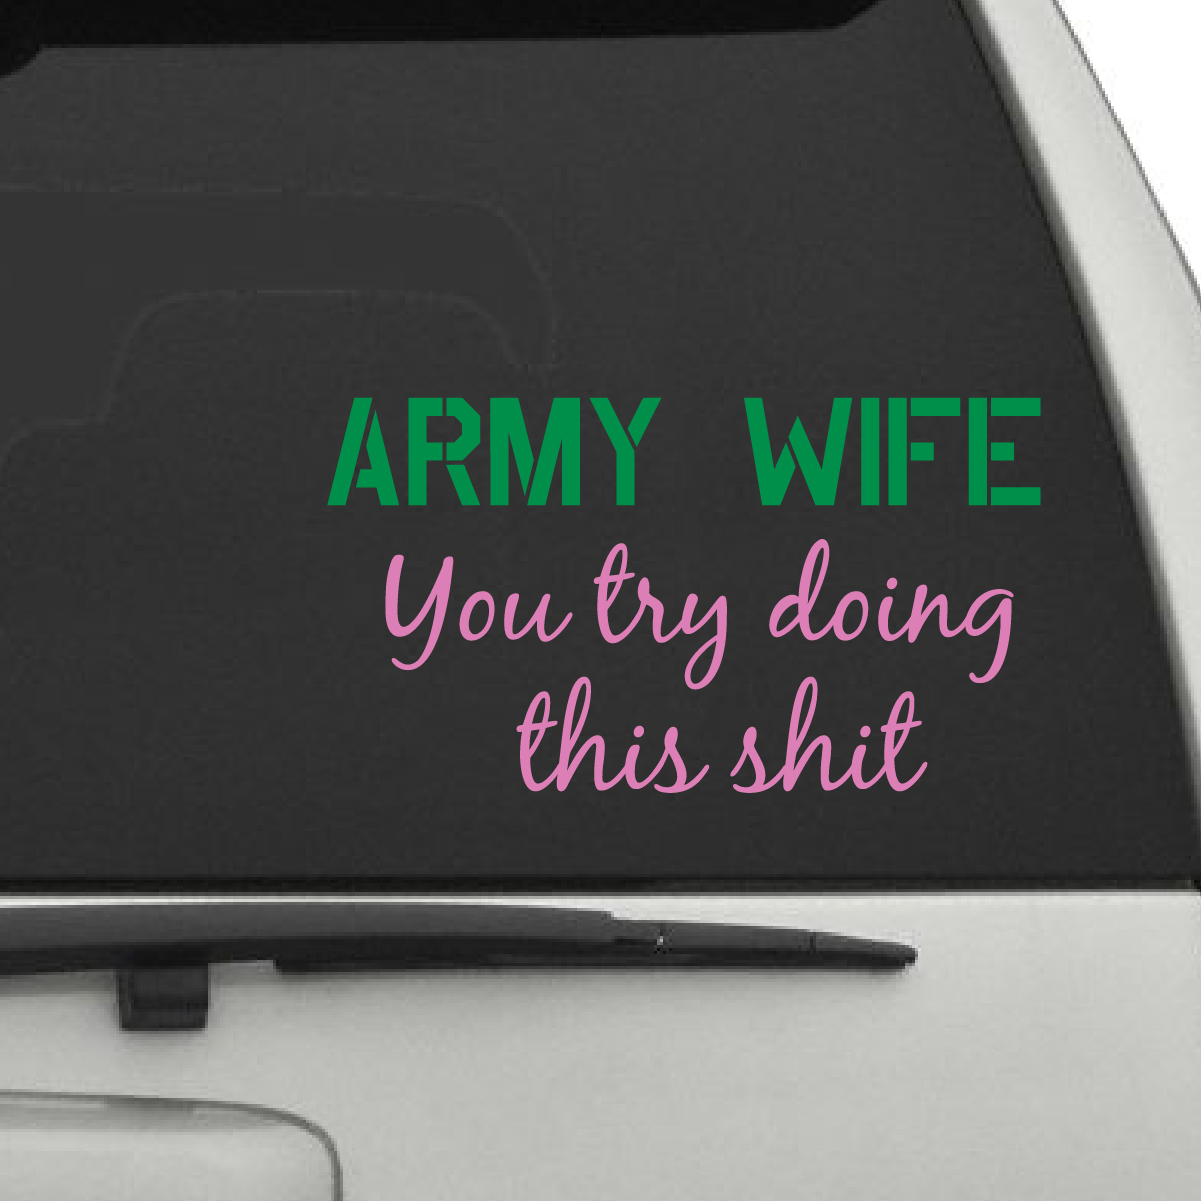 Army Wife Car Decals The Decal Guru - Military window decals for cars